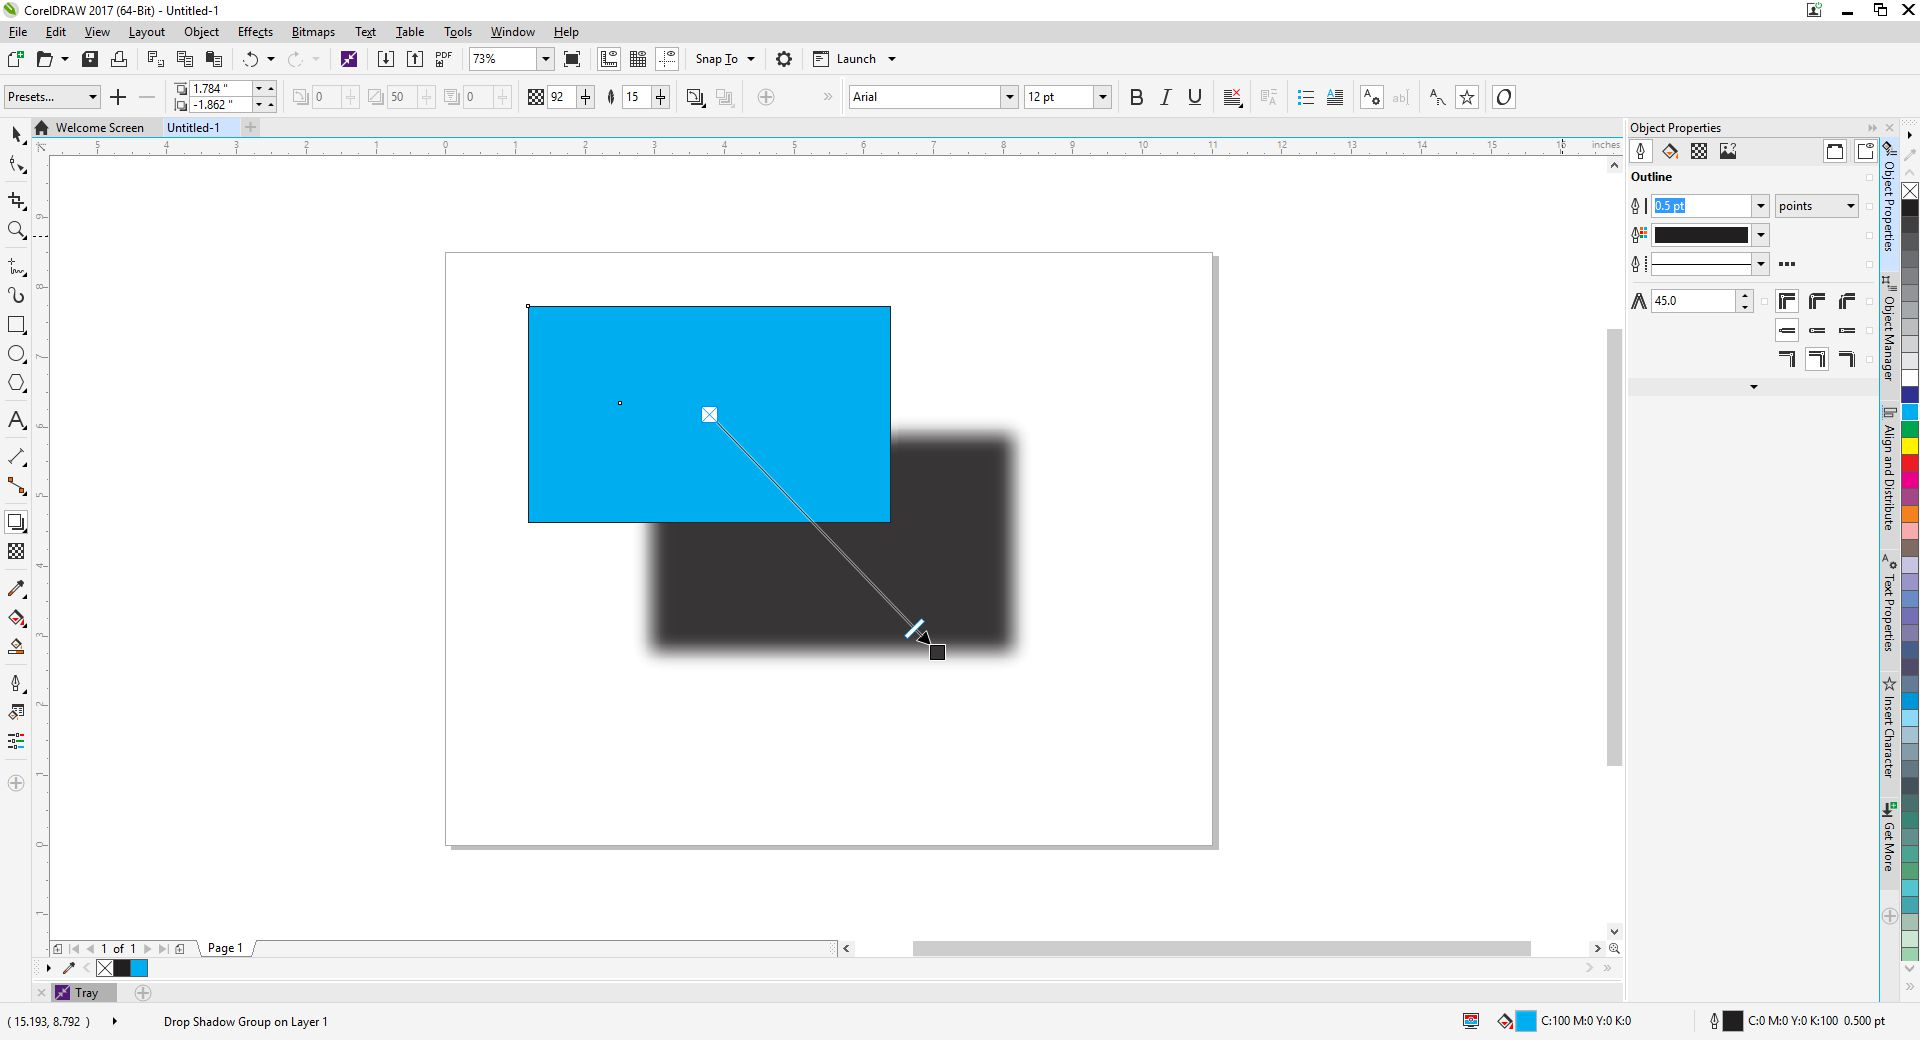 Coreldraw version 12 -  The Property Bar Or Anywhere Else In This Version Many Of The Property Bar Options Are Grayed Out Maybe I M Just Blind Can You Describe Where It Is